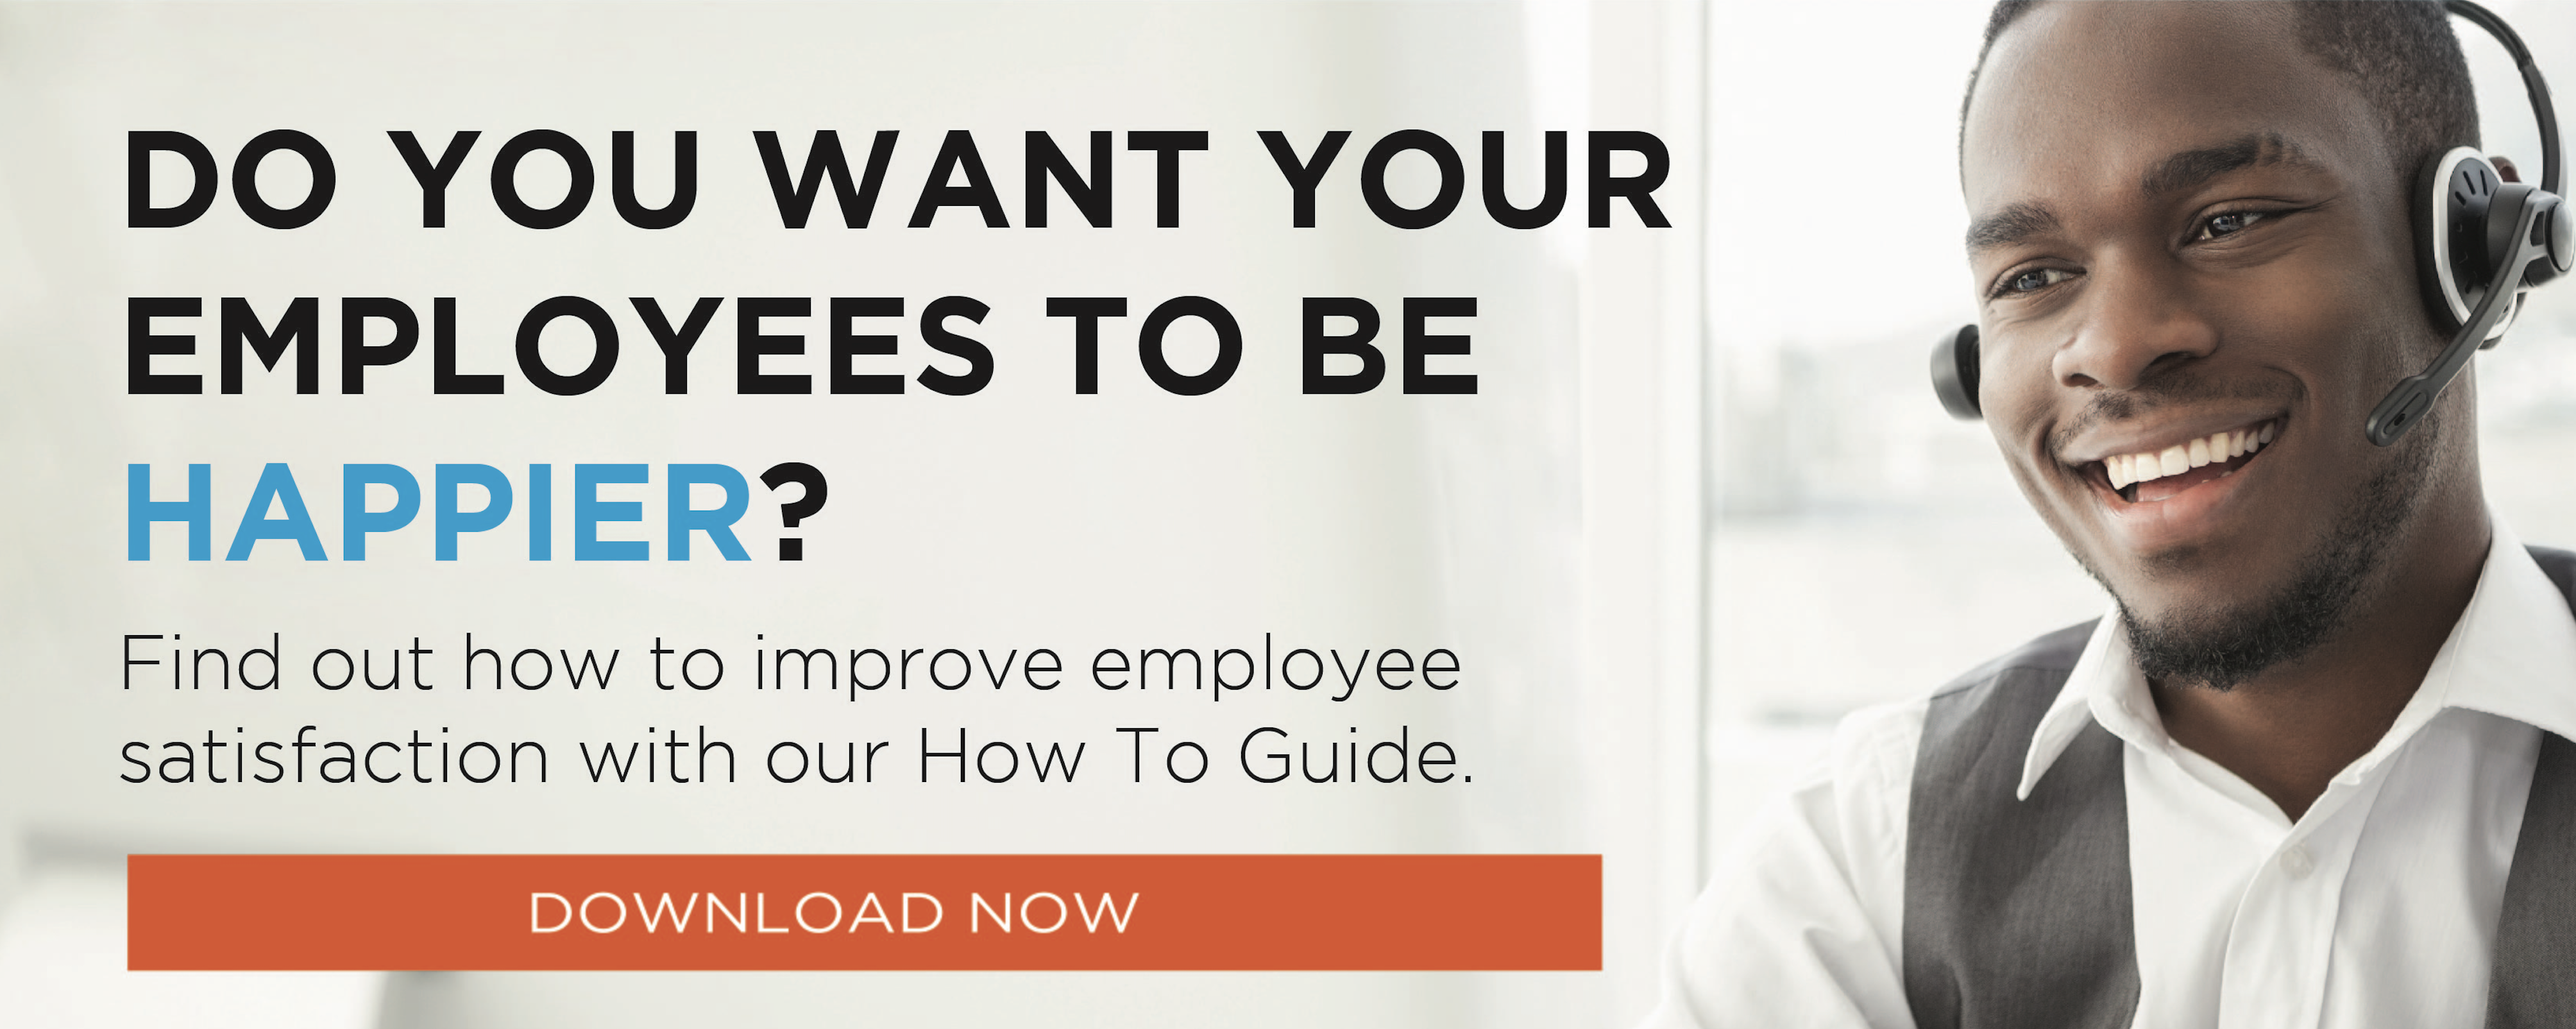 Download our Employee Happiness Guide | Anomaly Squared